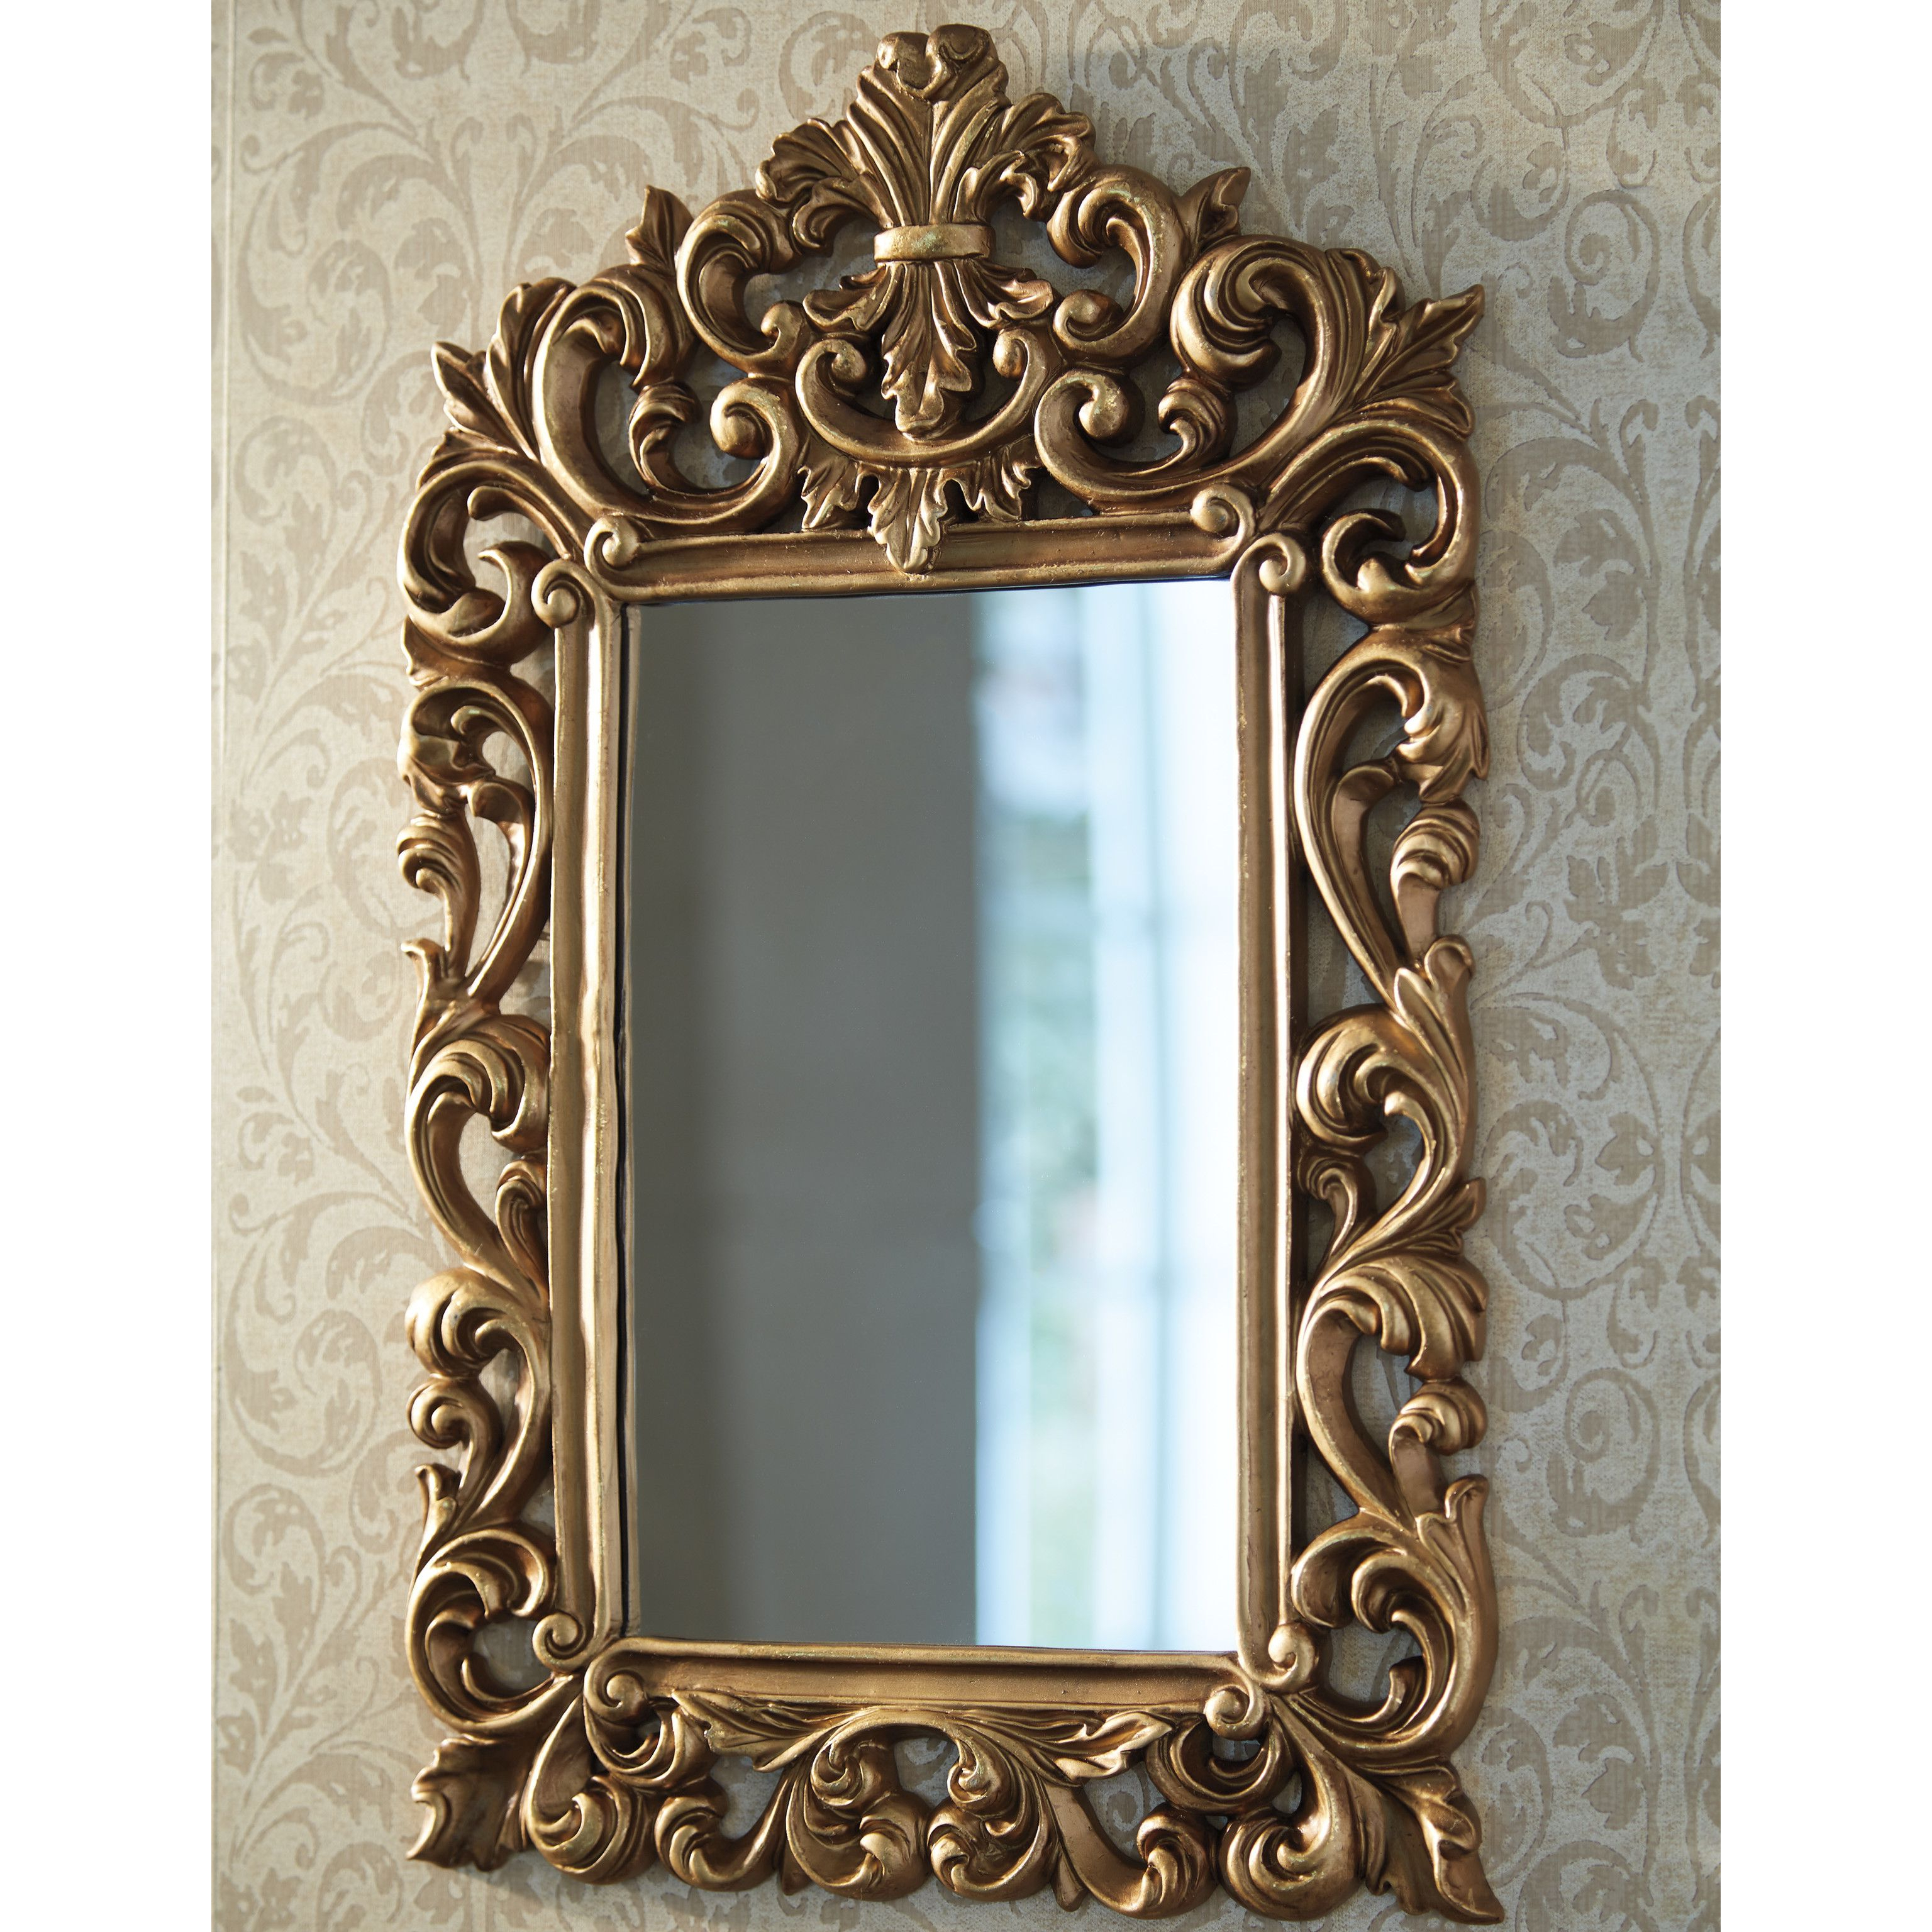 Most Popular Antique Gold Wall Mirrors Regarding Astoria Grand Antique Gold Wall Mirror (View 10 of 20)